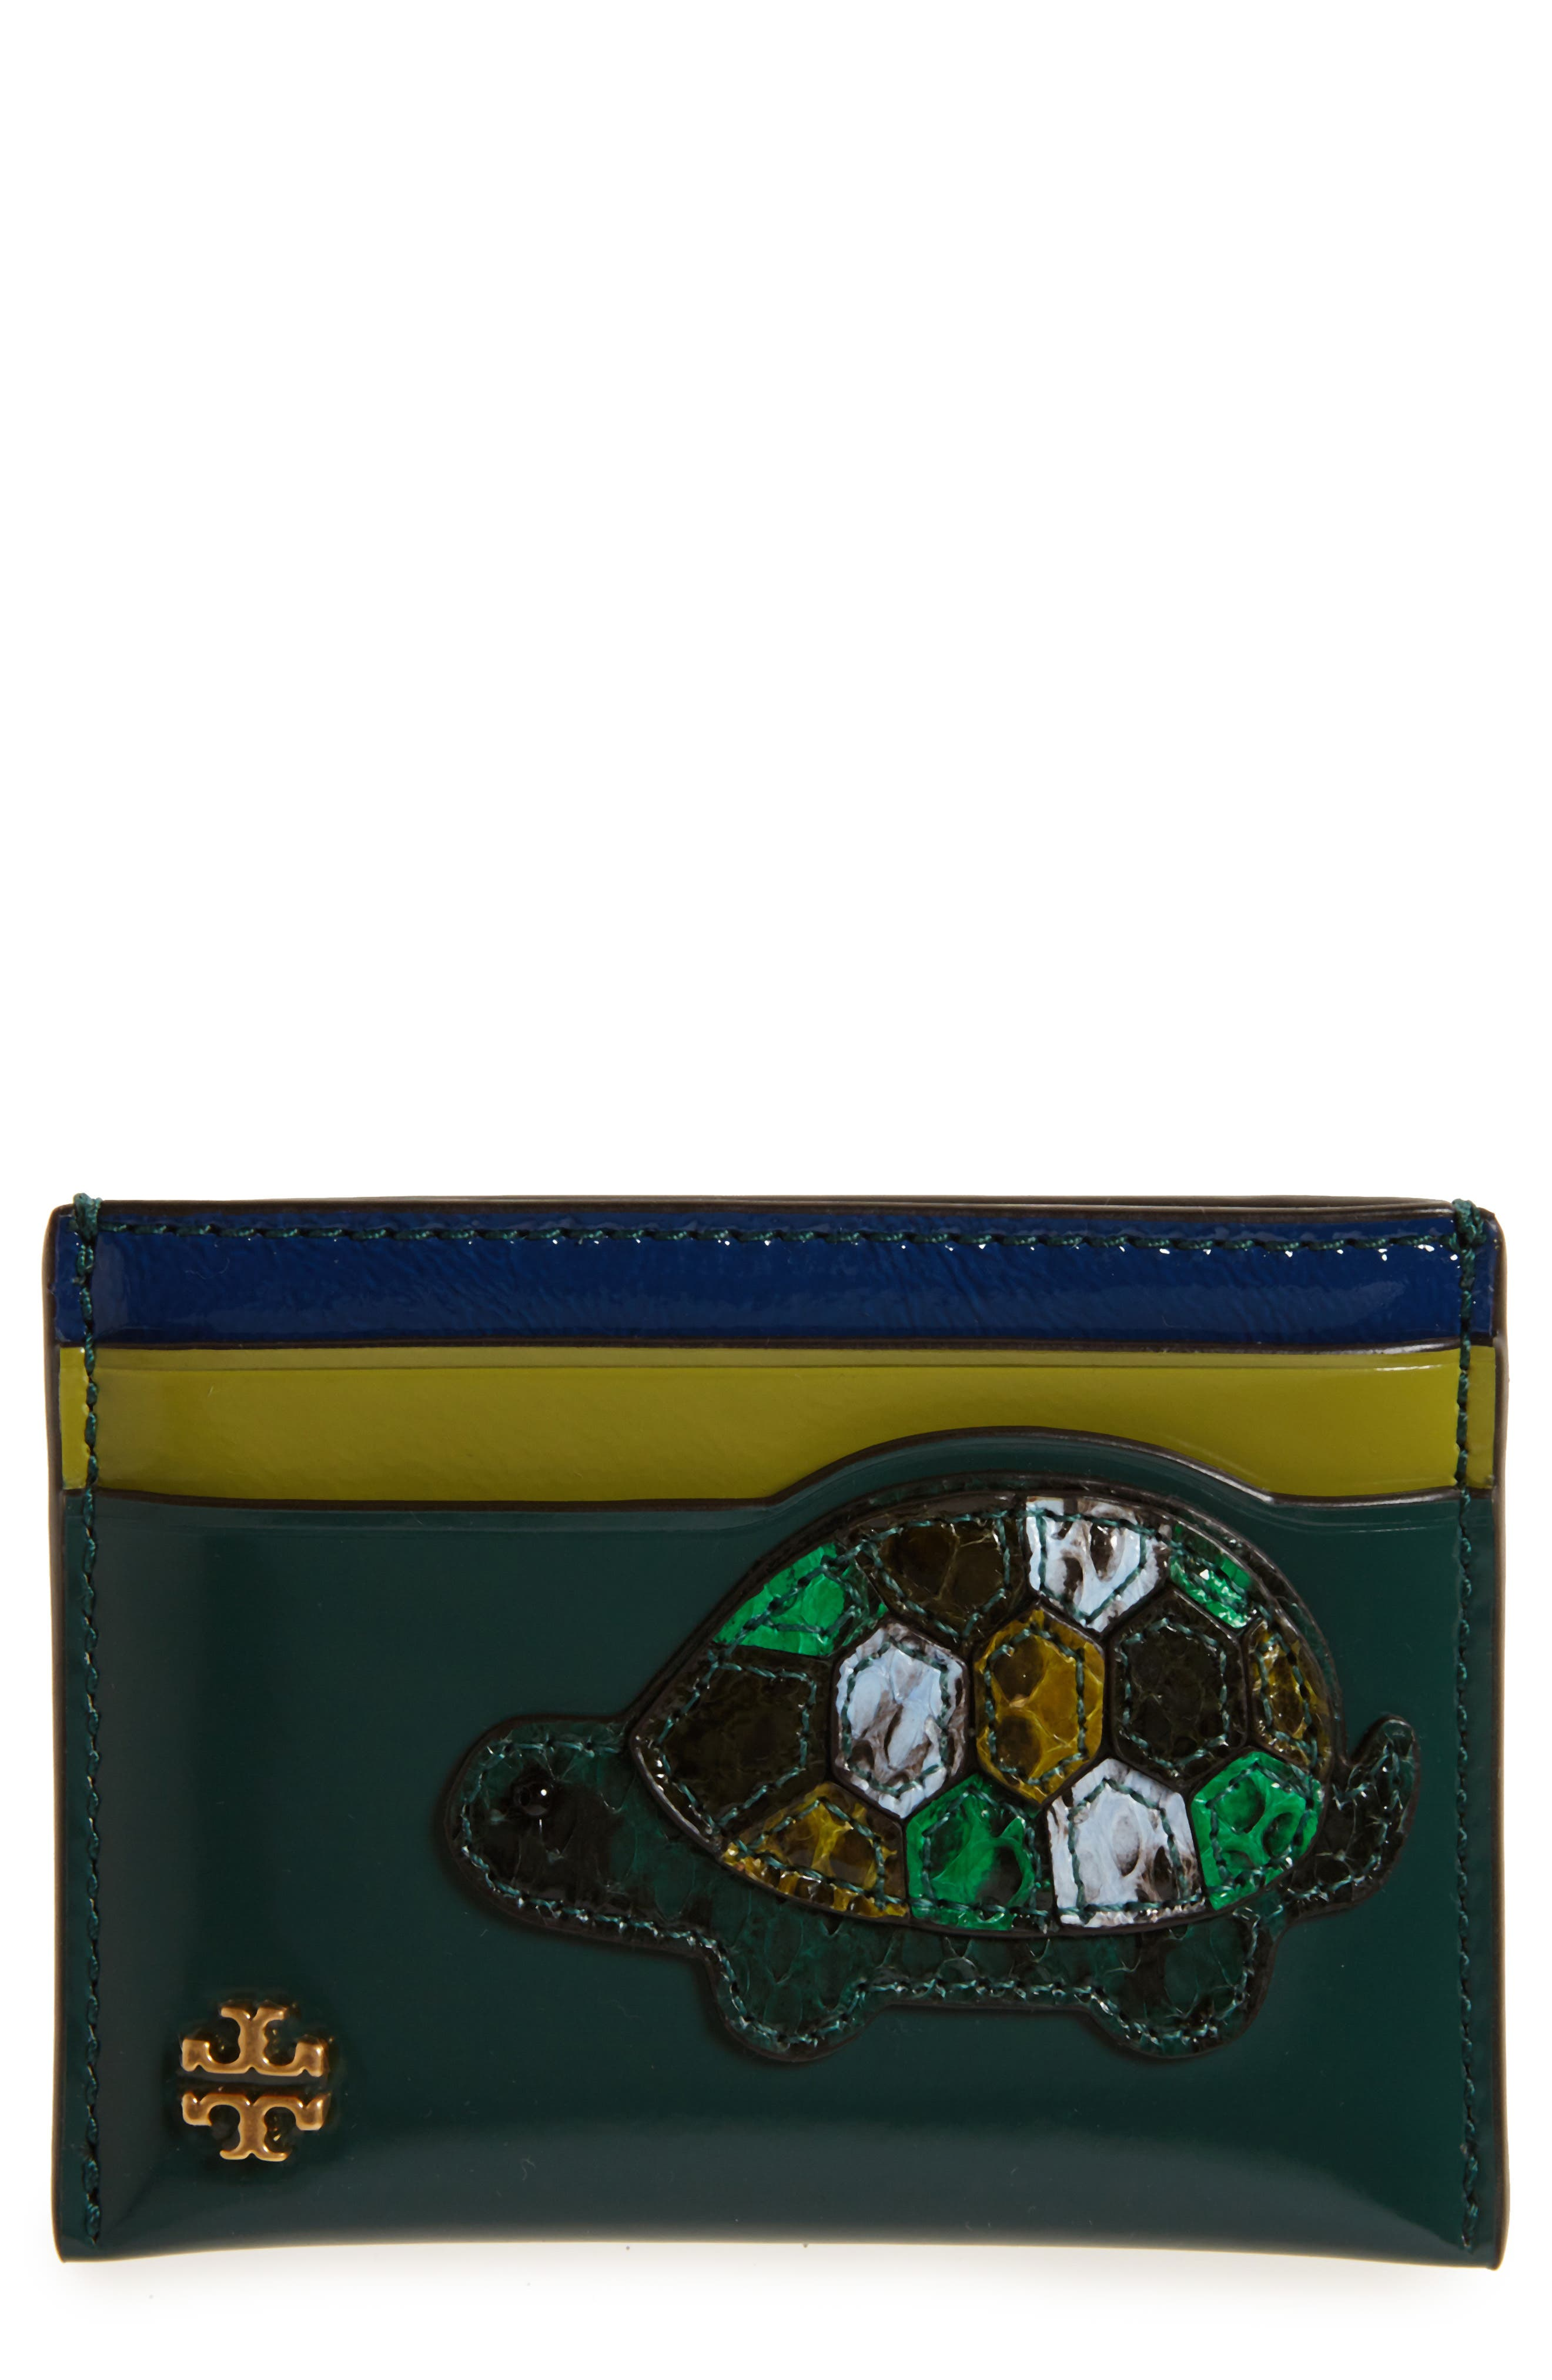 Main Image - Tory Burch Turtle Appliqué Leather & Genuine Snakeskin Card Case